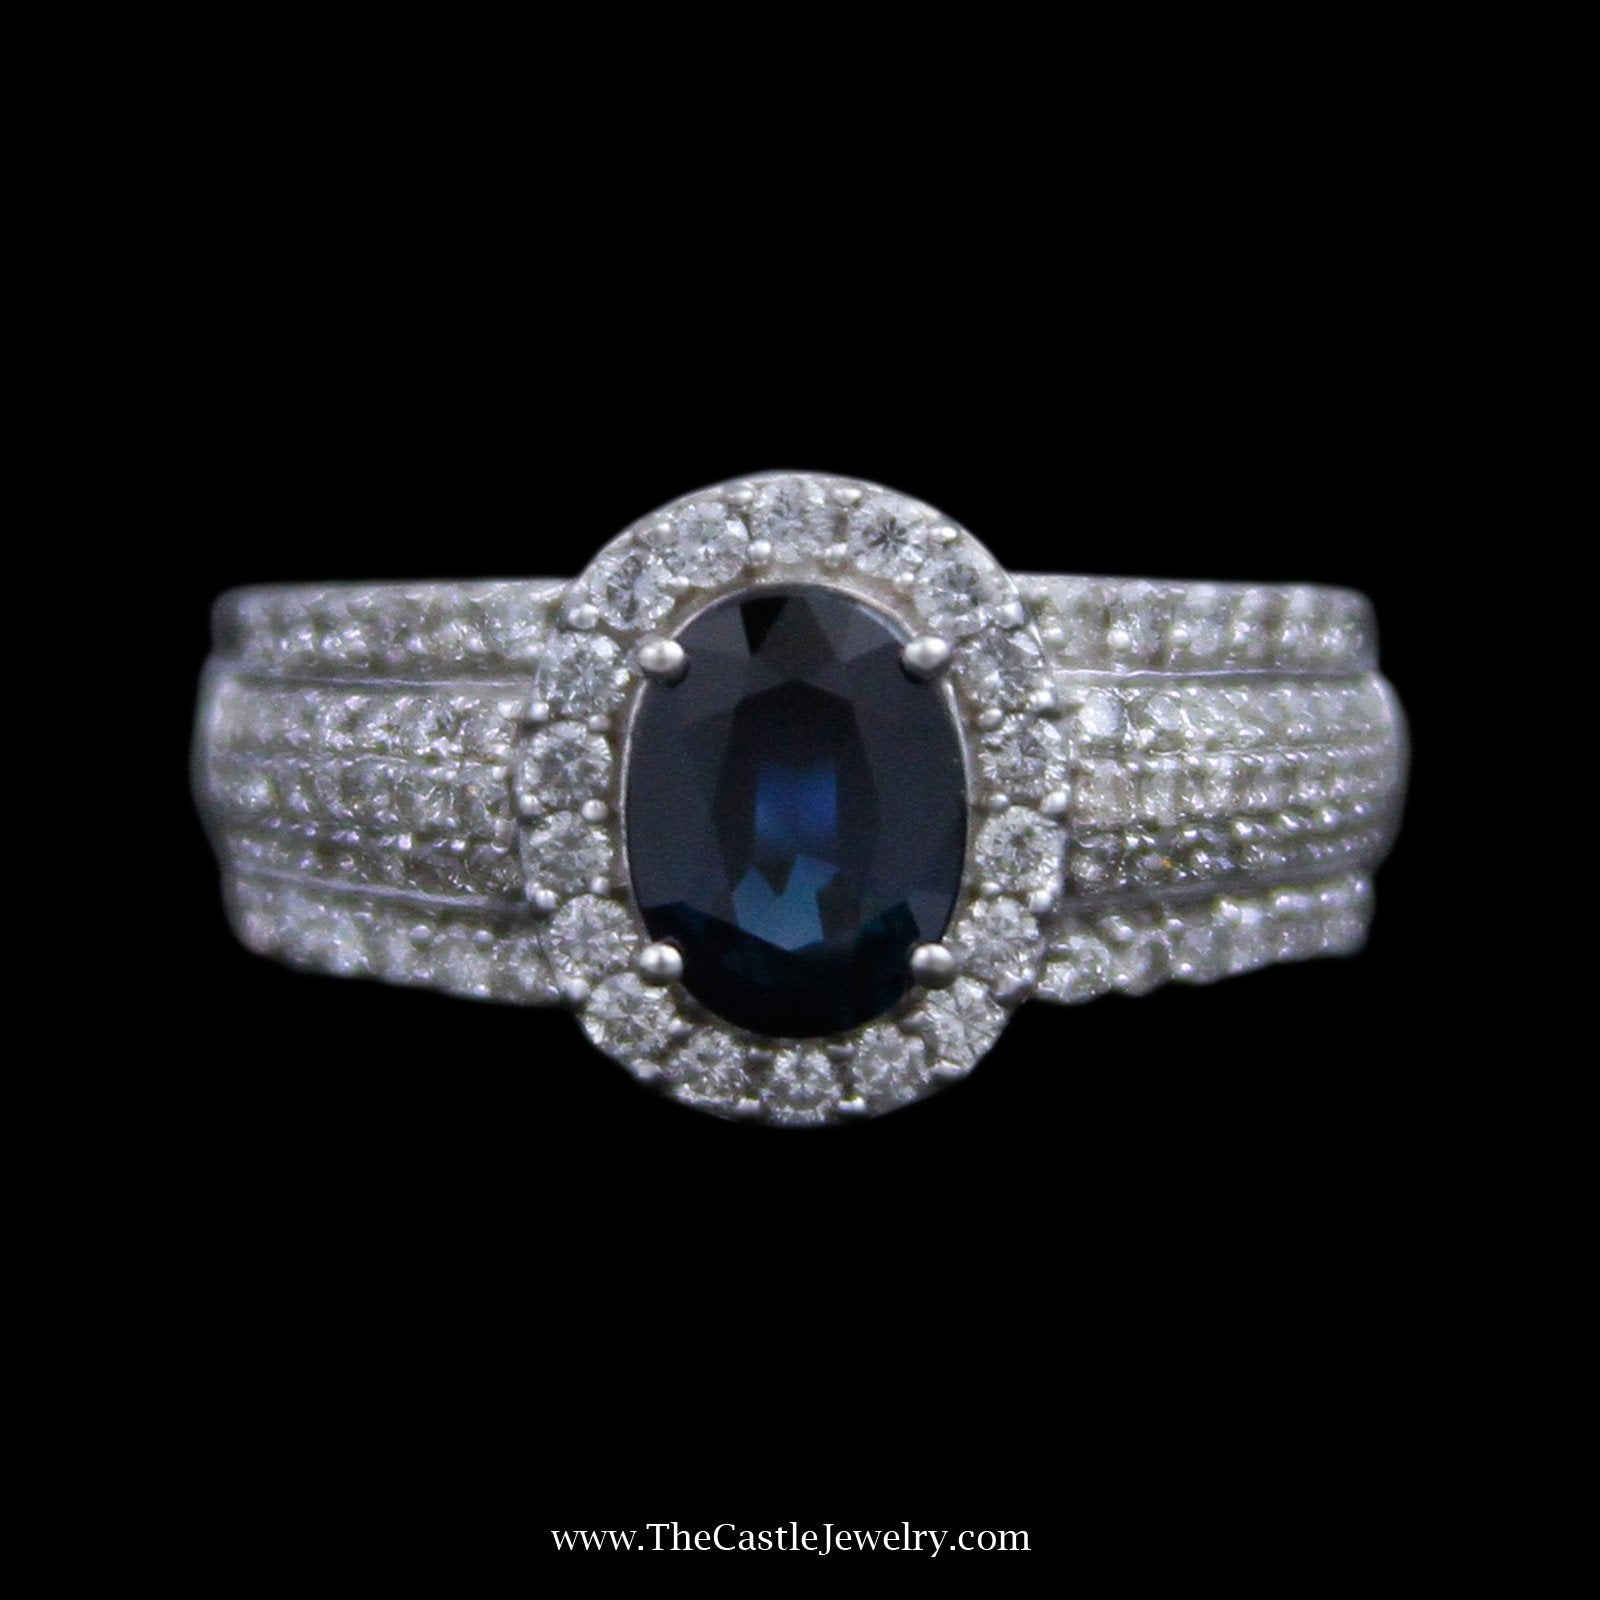 Oval Sapphire Ring, Round Brilliant Cut Diamond Bezel & Sides in 14K White Gold